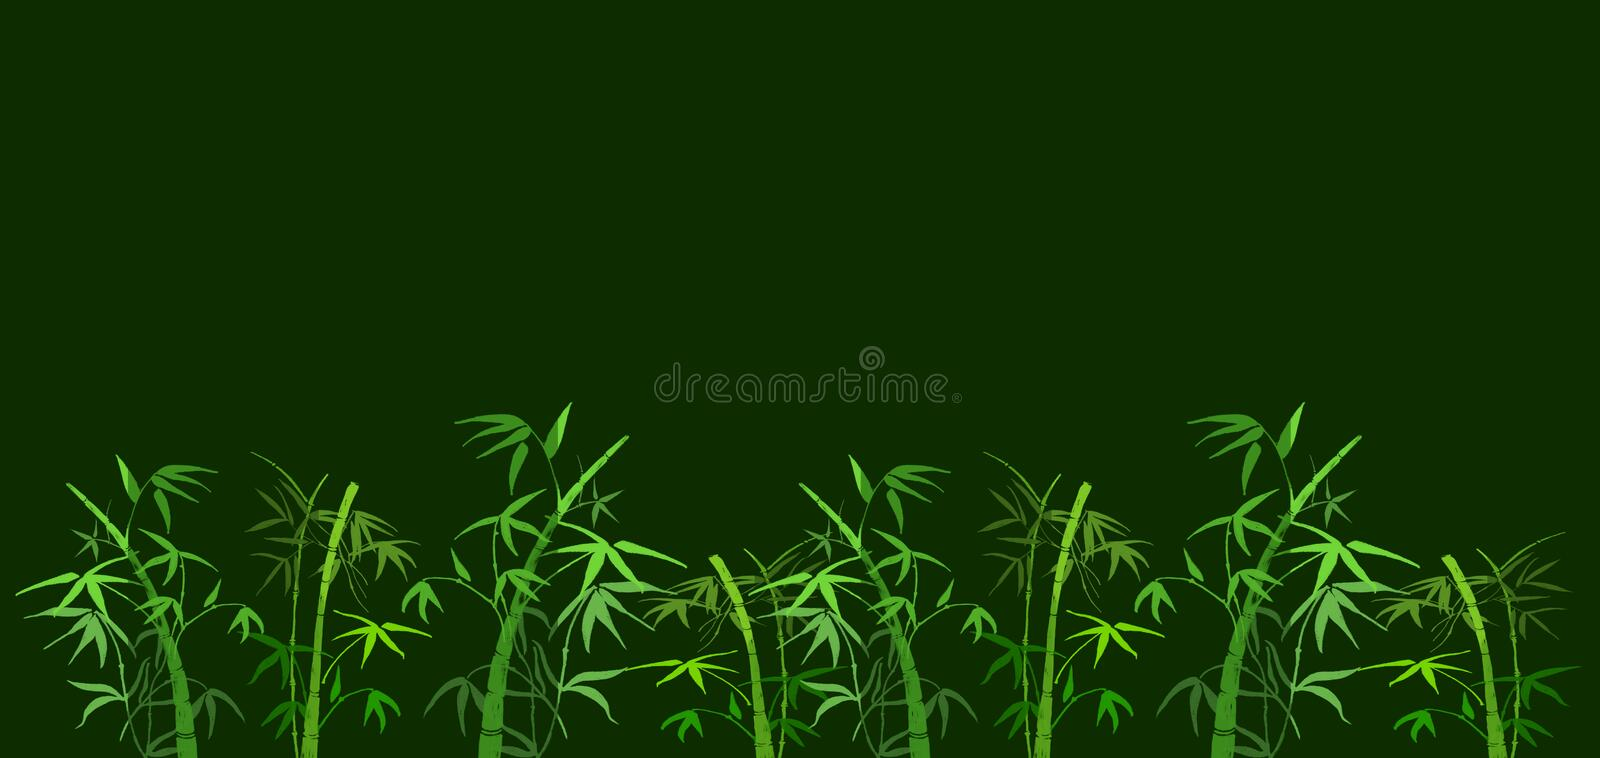 Bamboo. On green background the branches of bamboo stock illustration